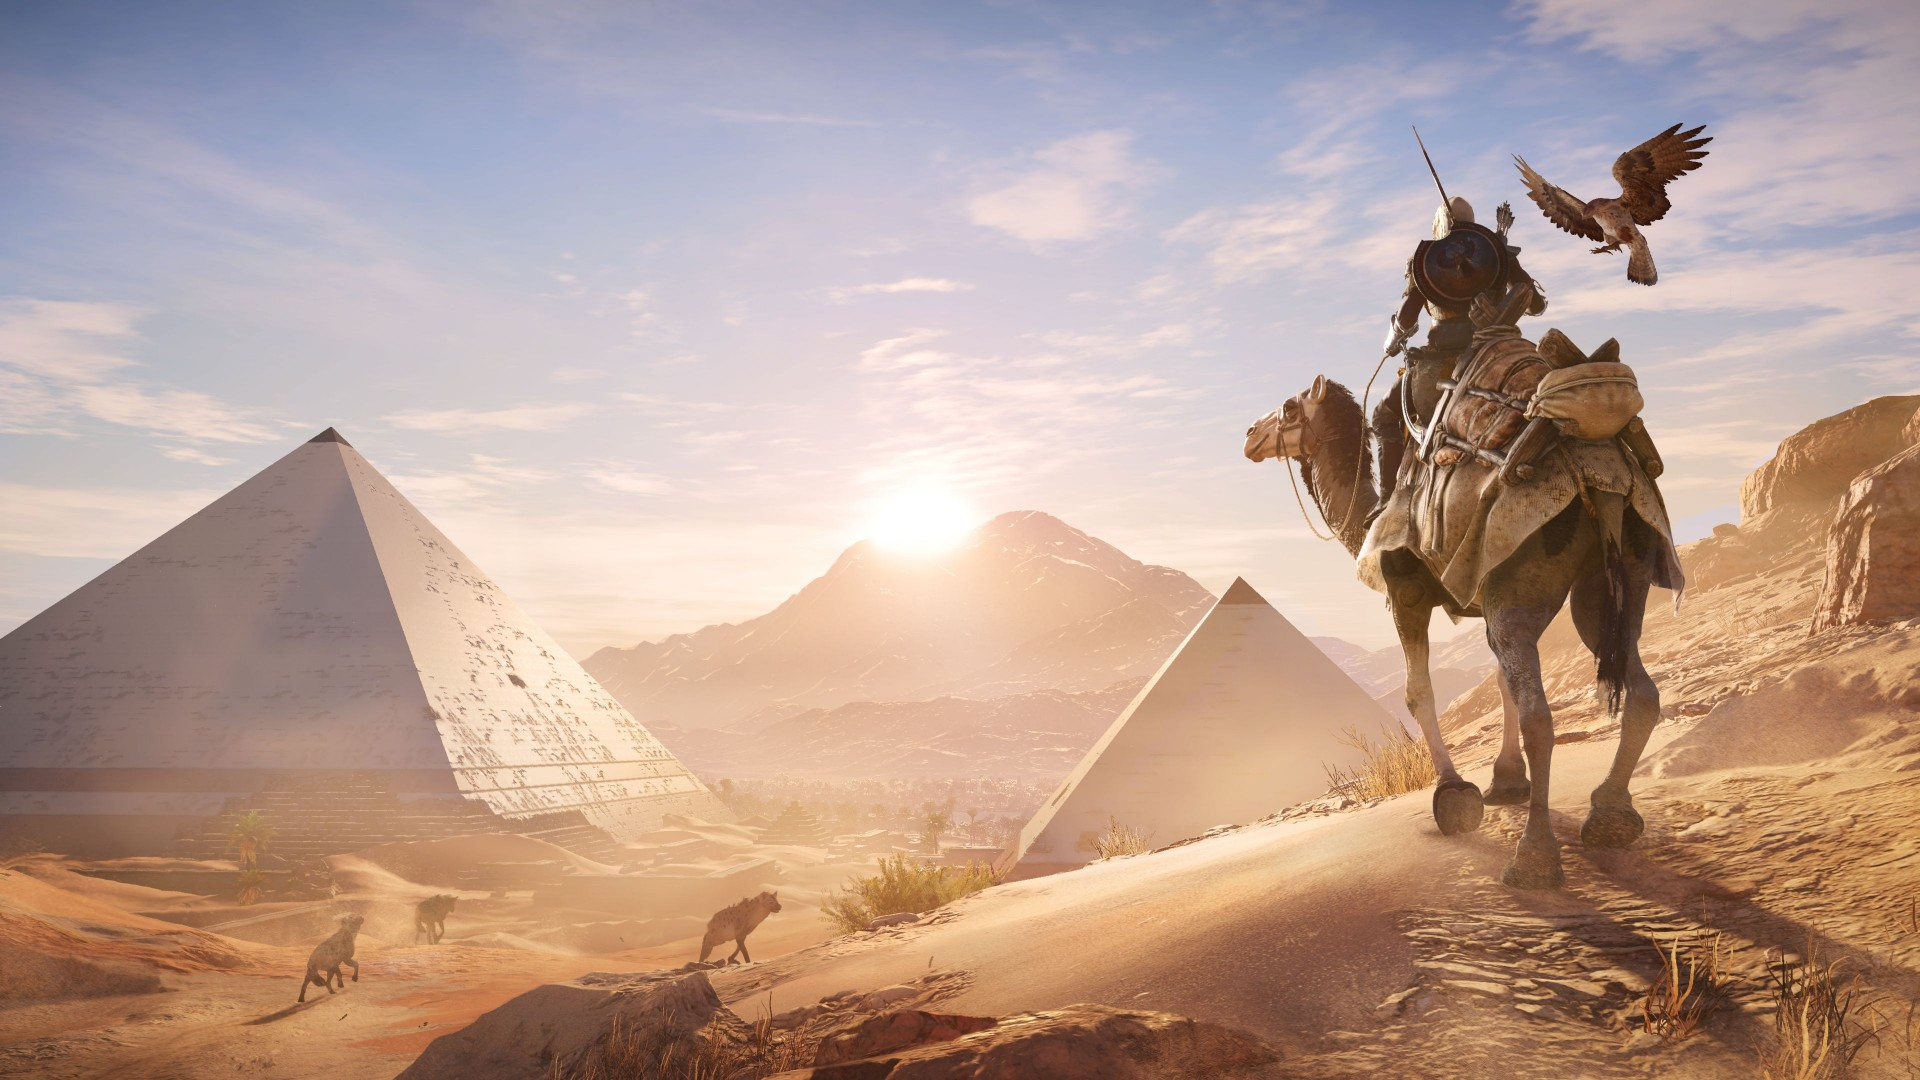 3d Cute Wallpapers Download Assassins Creed Origins Egypt 4k Wallpapers Hd